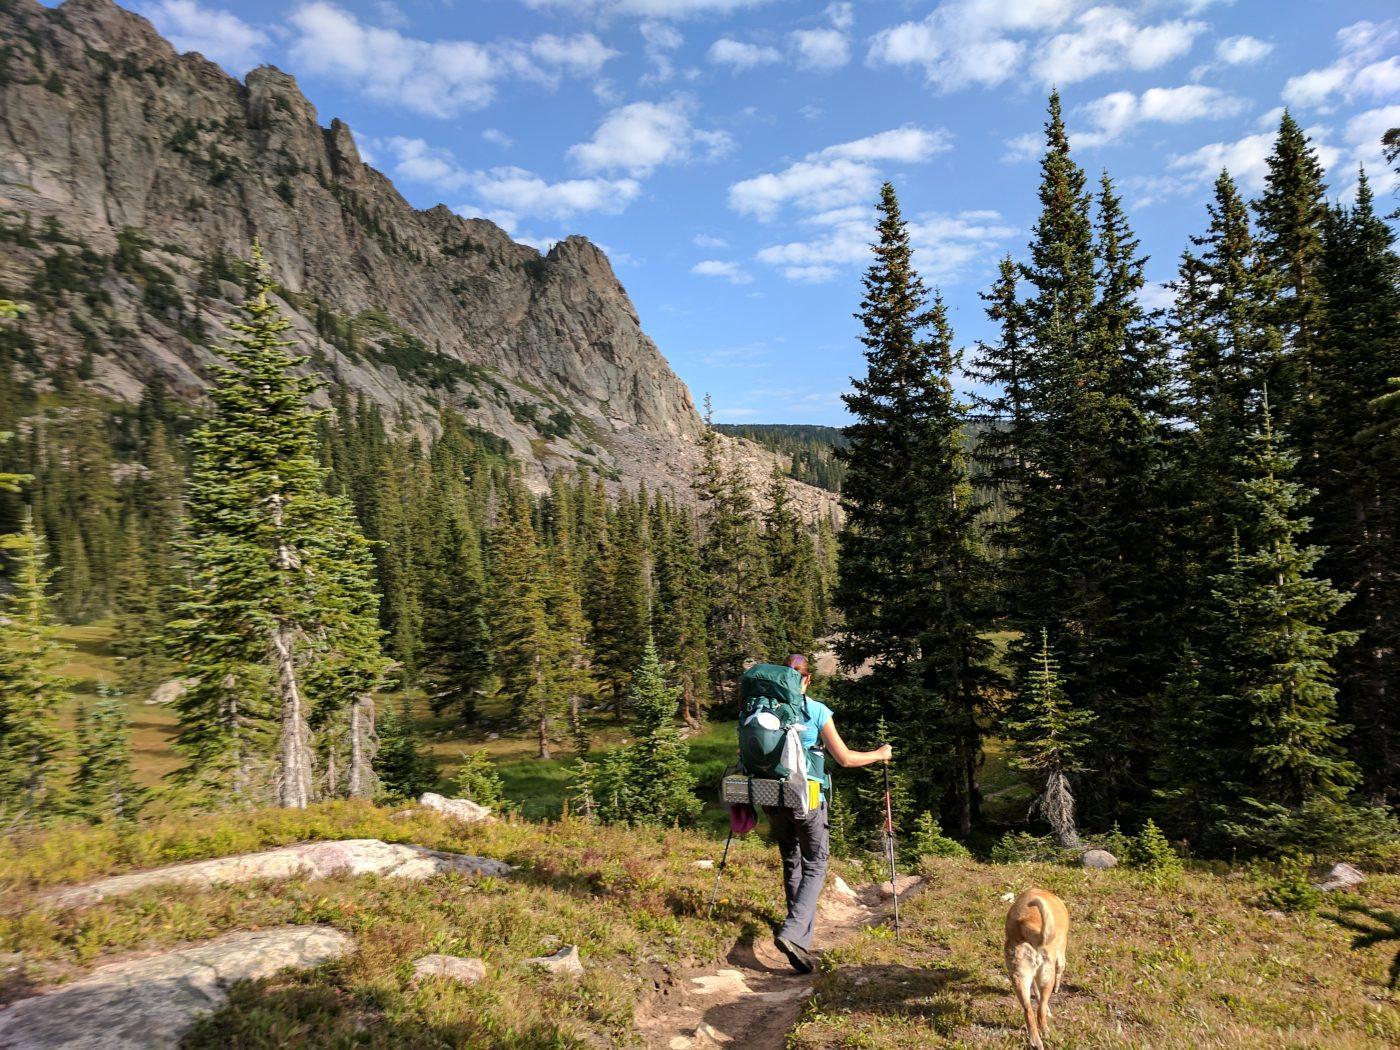 Sea to Summit Ultra Sil Compression Dry Sack Review